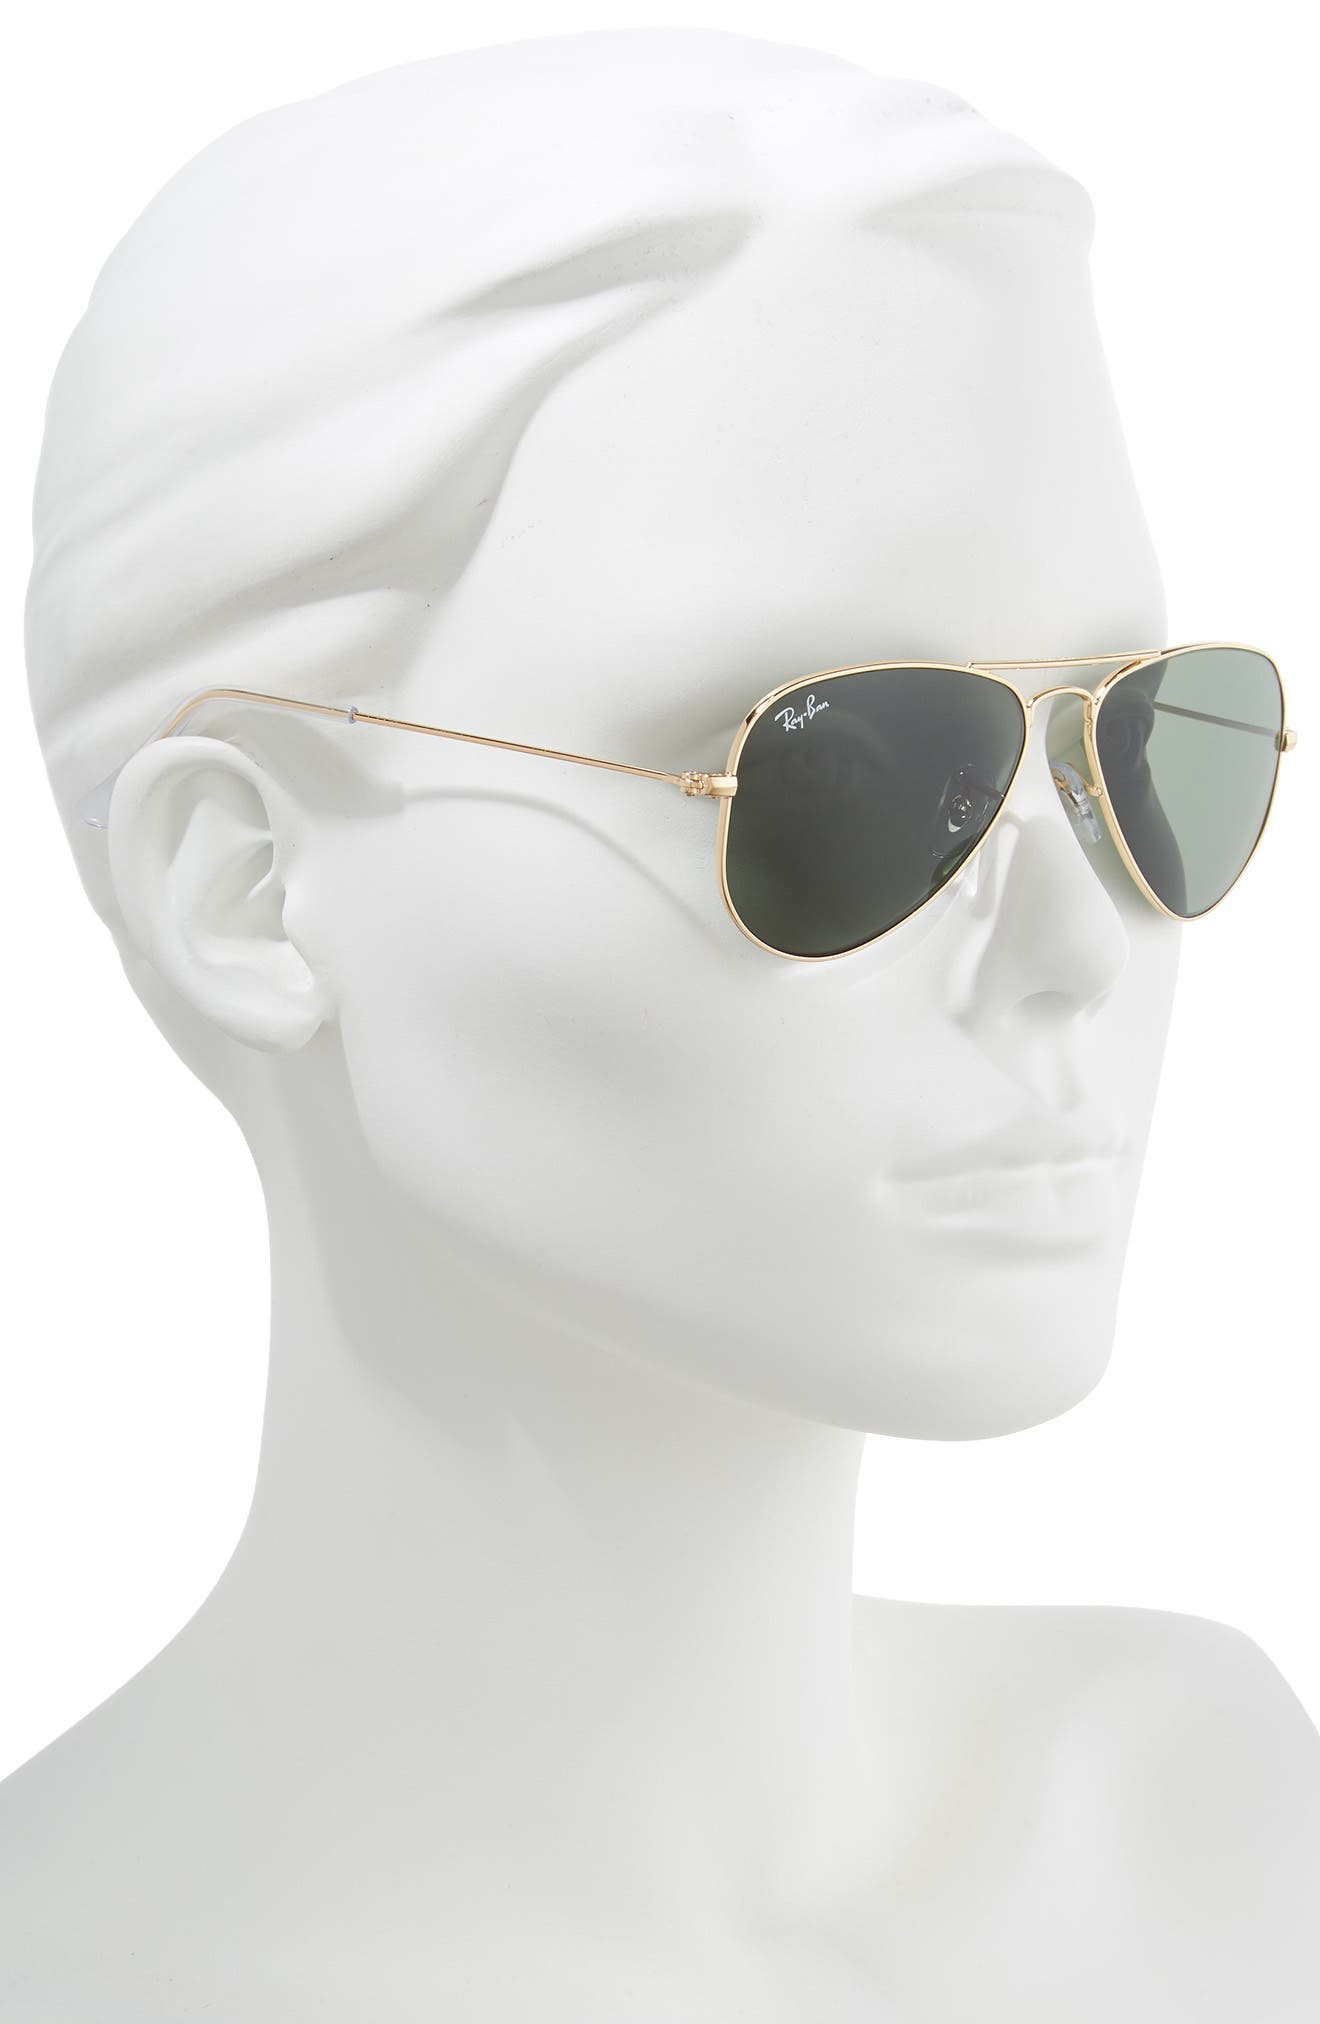 52mm Extra Small Aviator Sunglasses,                             Alternate thumbnail 2, color,                             GOLD/ GREEN SOLID